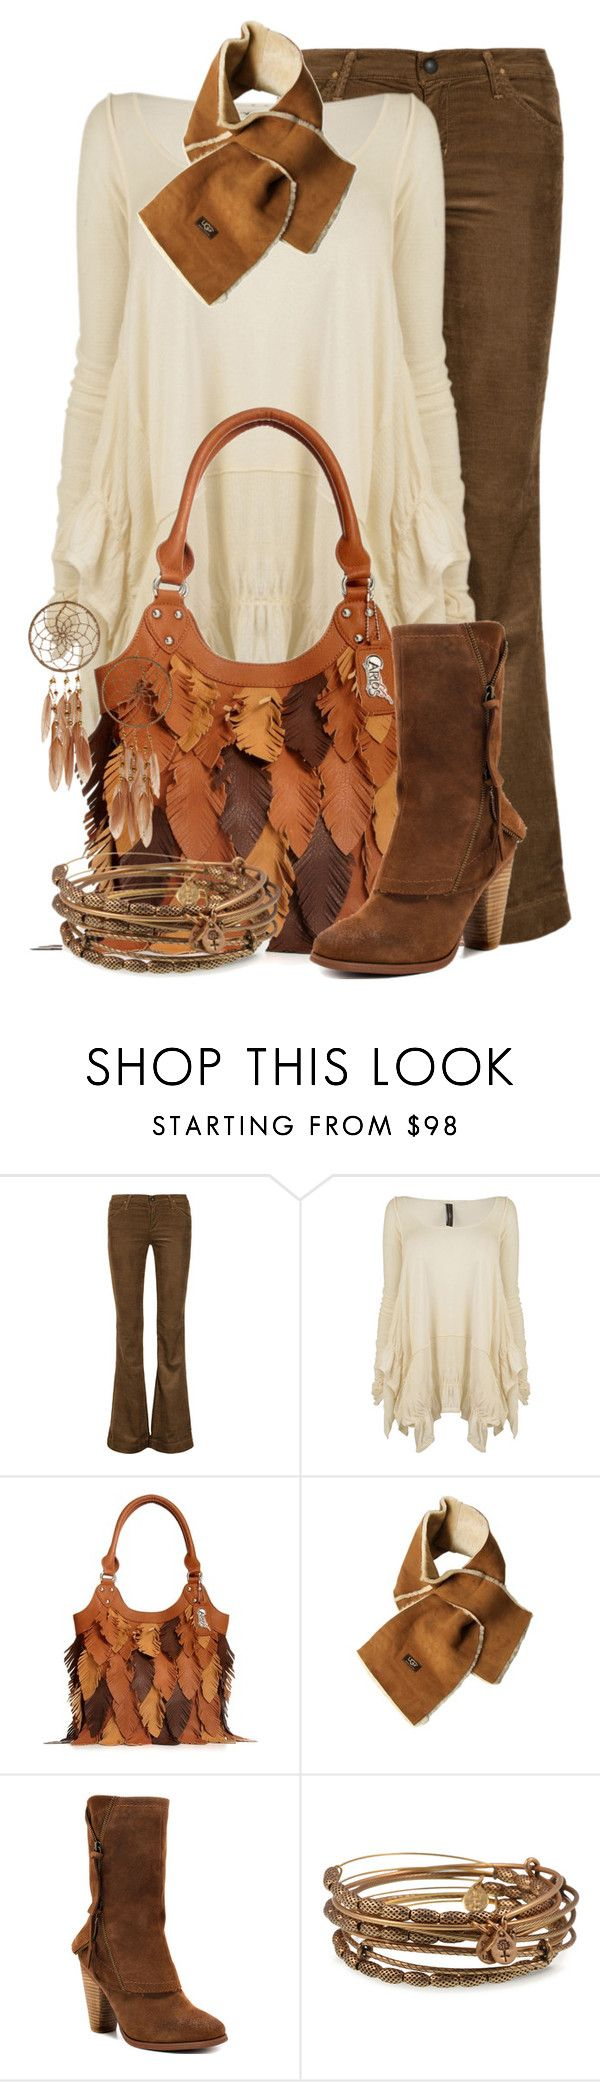 """Carlos Santana Handbag"" by jackie22 ❤ liked on Polyvore featuring Goldsign, HIGH, Carlos by Carlos Santana, UGG Australia, Kensie, Alex and Ani, Miss Selfridge, flare jeans, ankle boots and suede boots"